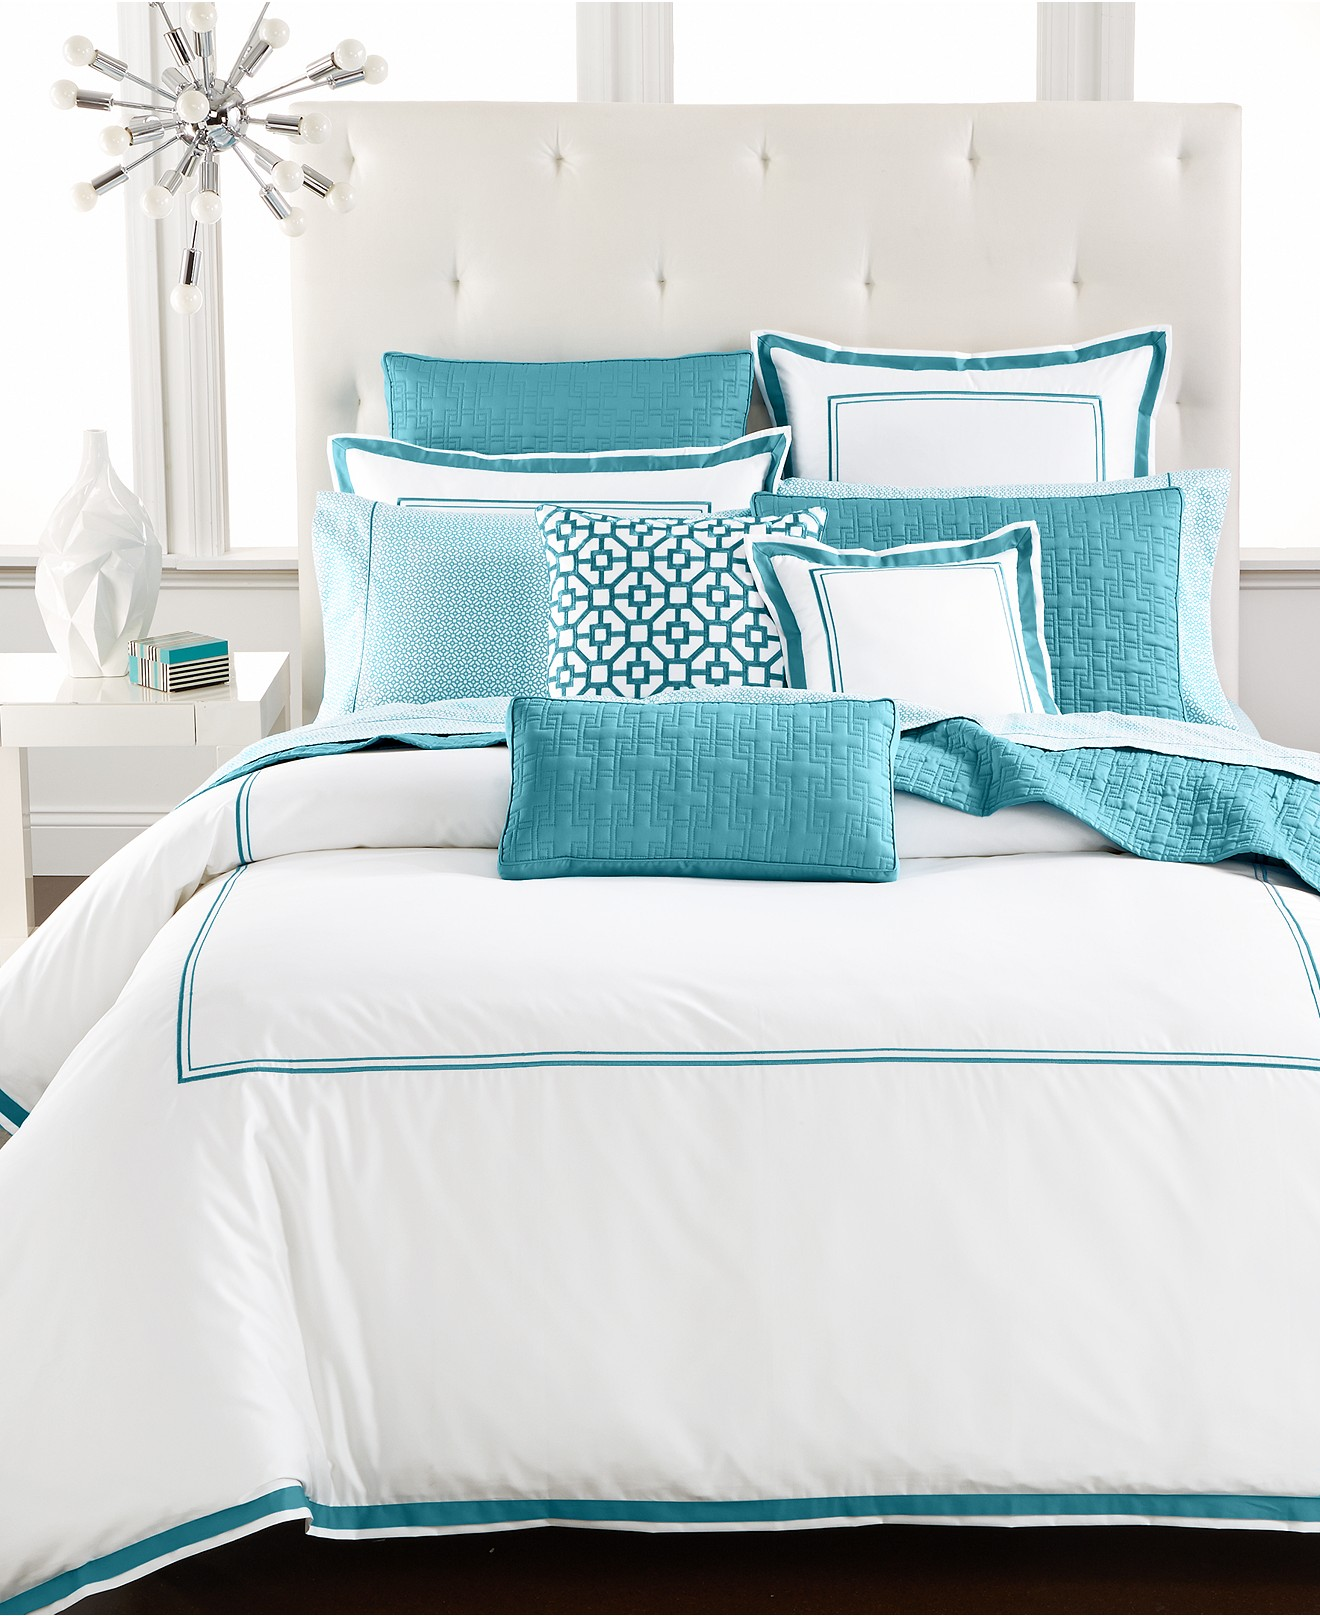 Hotel Collection Aqua Embroidered Frame Bedding Collection Everything Turquoise